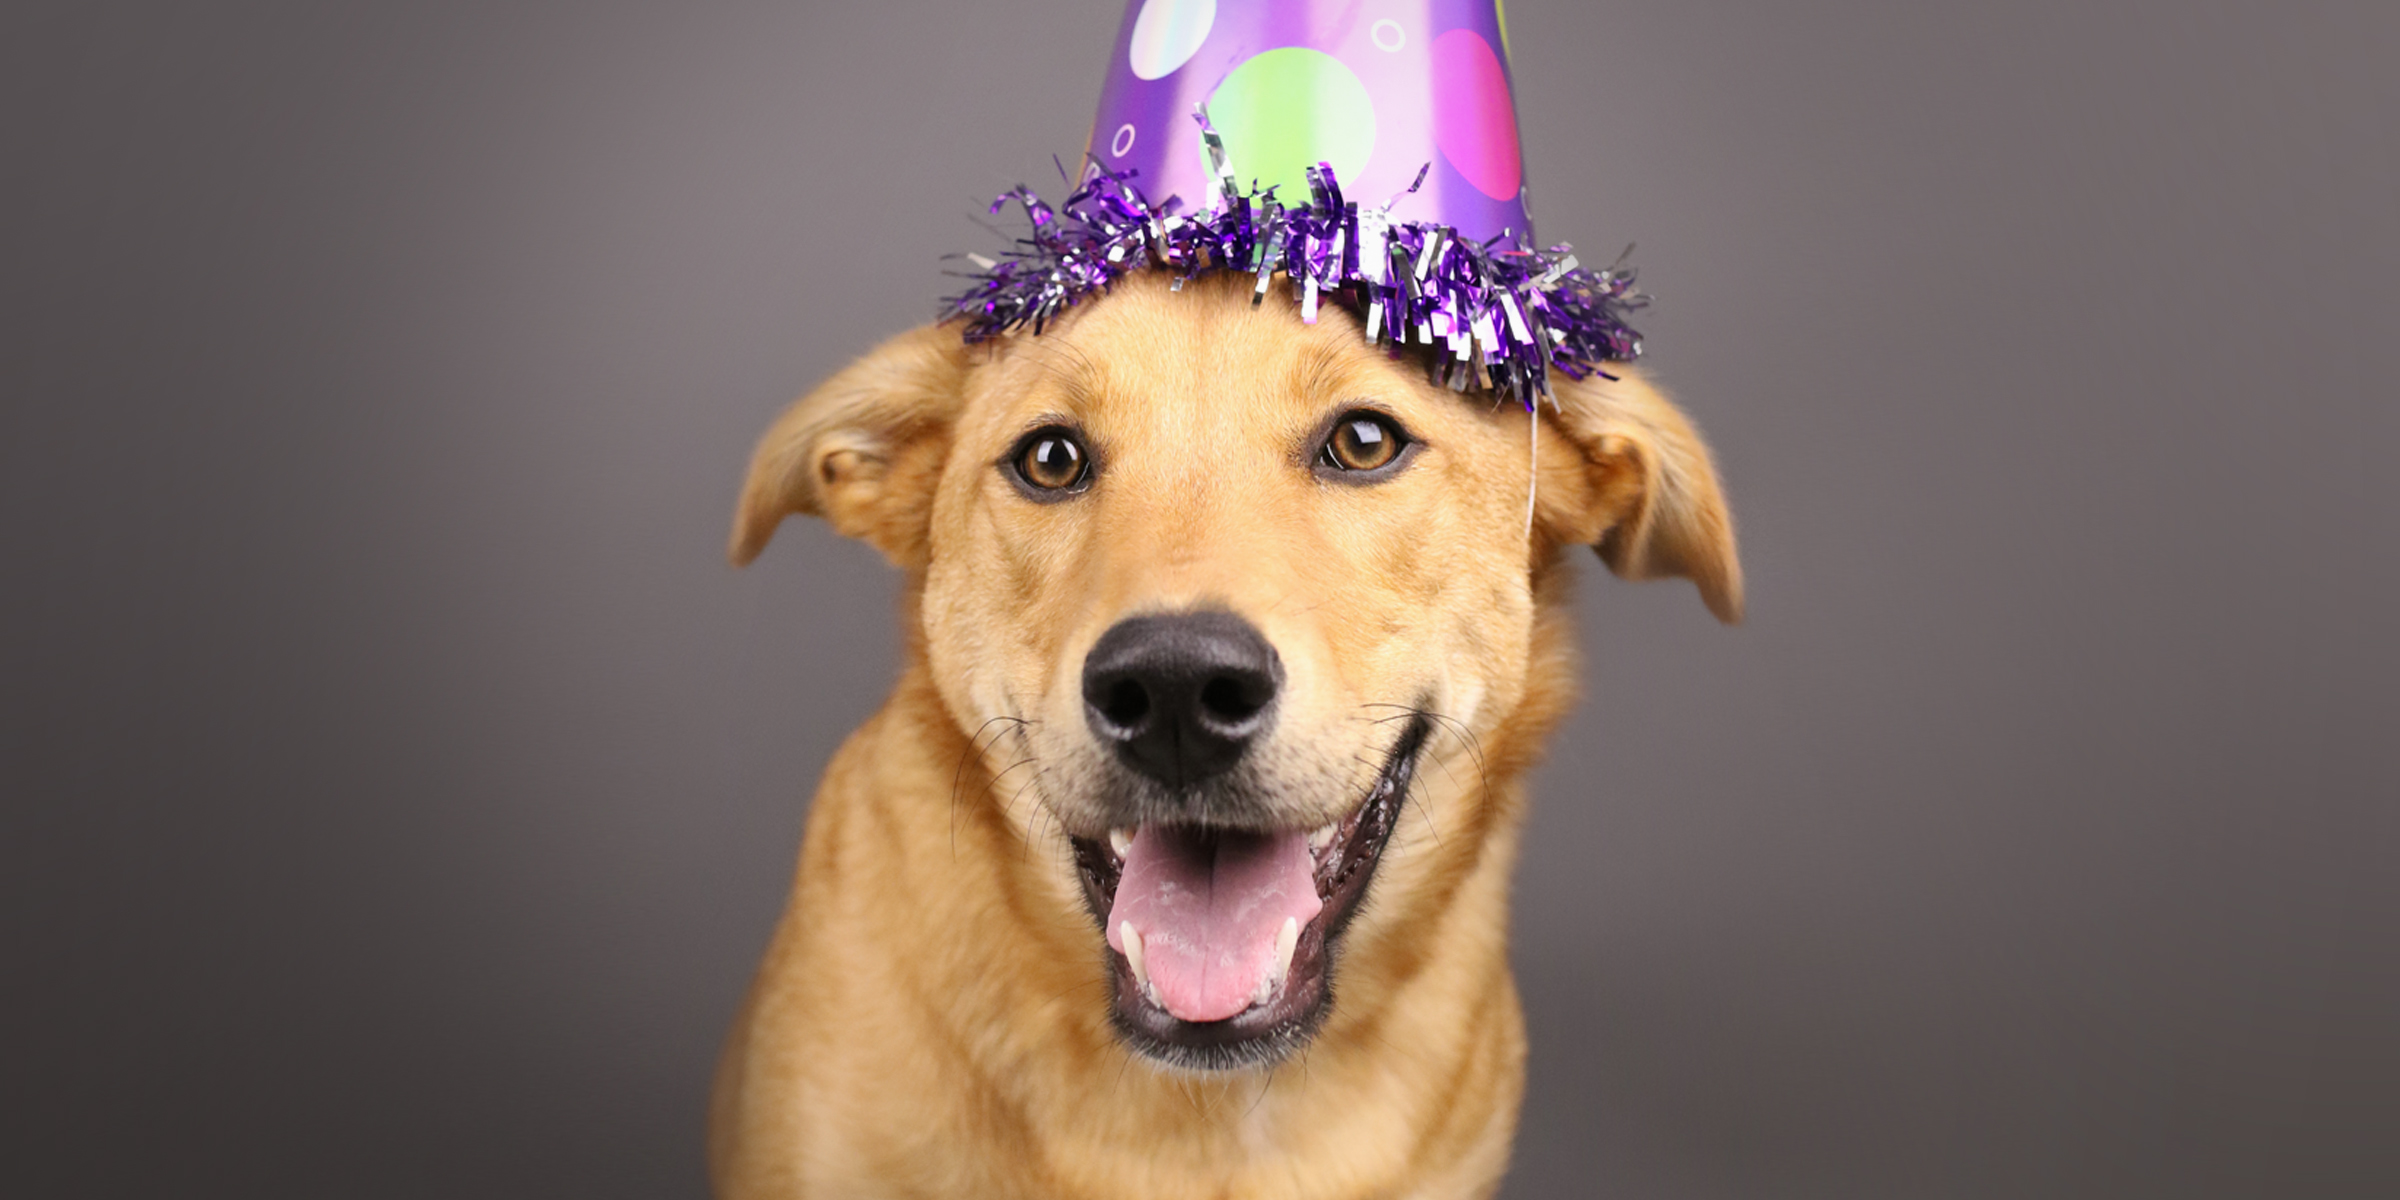 Doggy Birthday Photo Shoot Party